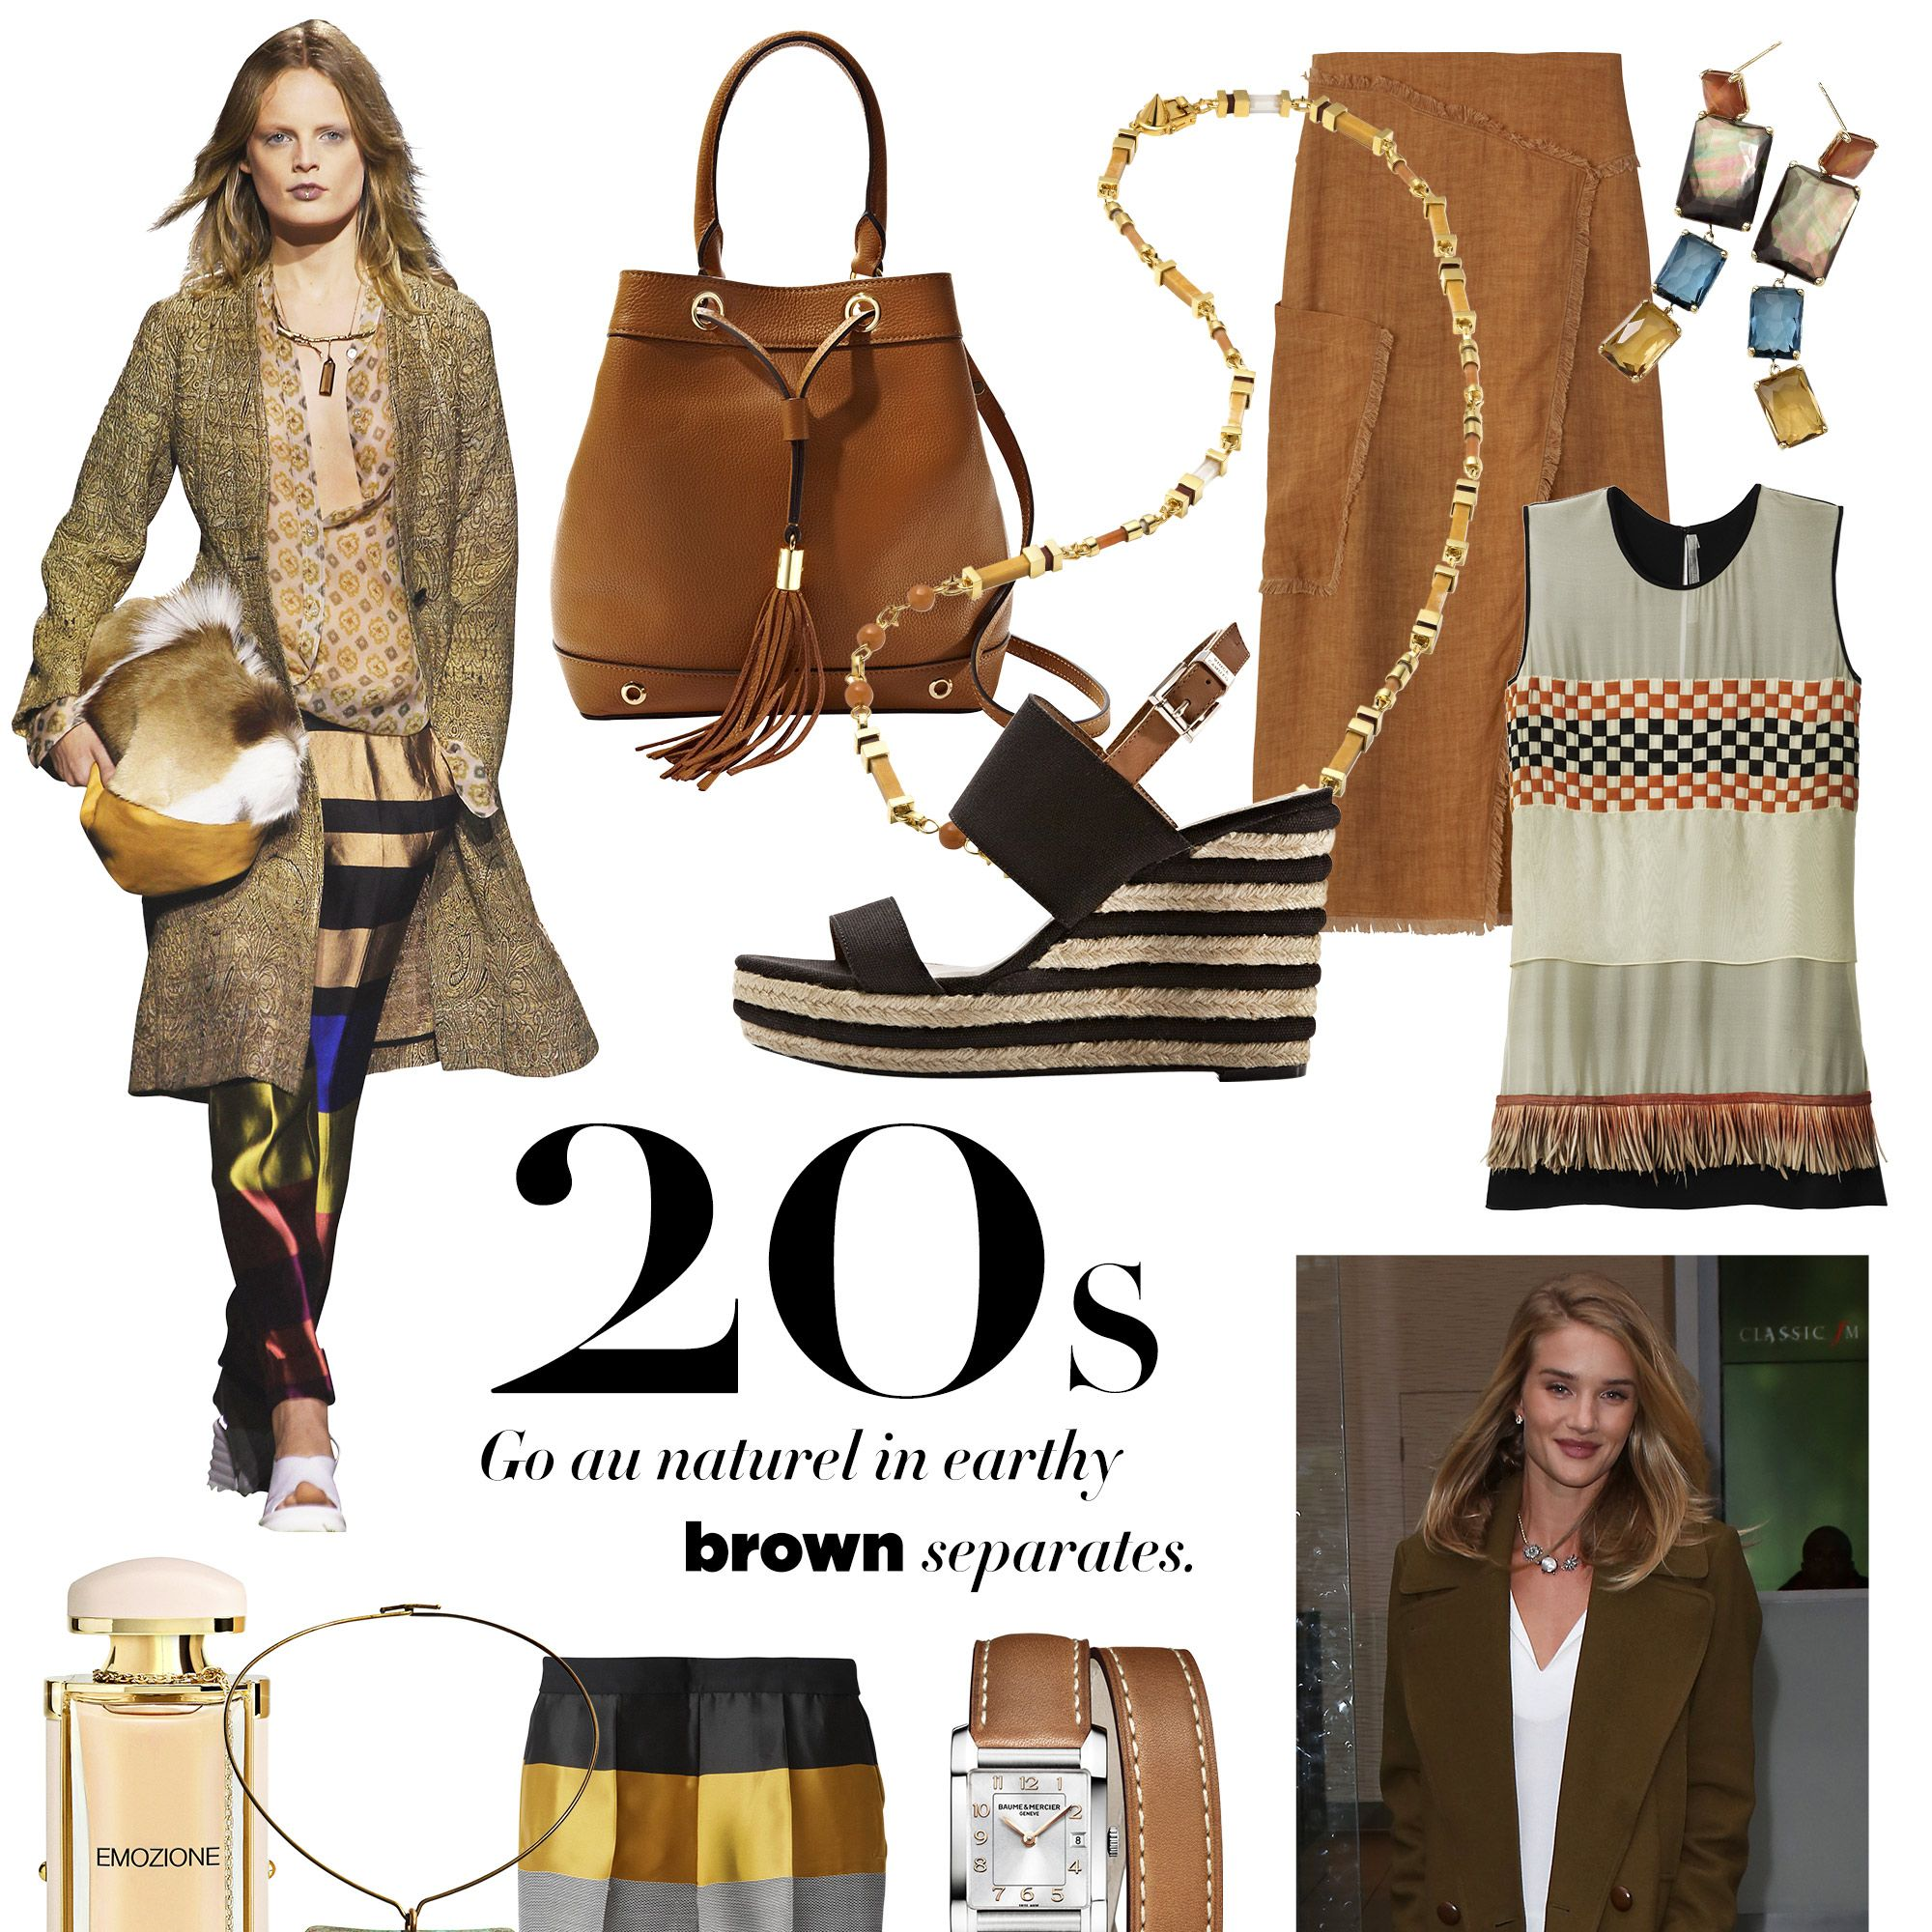 """<strong>Milly</strong> bag, $365, <a target=""""_blank"""" href=""""http://www.shopbop.com/astor-bucket-bag-milly/vp/v=1/1543136595.htm?folderID=2534374302079688&amp&#x3B;fm=other&amp&#x3B;colorId=12867"""">shopbop.com</a>&#x3B; <strong>Vince Camuto</strong> sandal, $119, <a target=""""_blank"""" href=""""http://www.vincecamuto.com/loran/VC-LORAN.html?dwvar_VC-LORAN_colormaterial=101%20CASCJU#start=1"""">vincecamuto.com</a>&#x3B; <strong>Tibi</strong> skirt, $495, similar styles available at <a target=""""_blank"""" href=""""http://shop.harpersbazaar.com/designers/tibi/"""">shopBAZAAR.com</a><img src=""""http://assets.hdmtools.com/images/HBZ/Shop.svg"""" class=""""icon shop"""">&#x3B; <strong>Ippolita</strong> earrings, $2,995, Bergdorf Goodman, 888-774-2424&#x3B; <strong>Reed Krakoff</strong> top, $1,790, <a target=""""_blank"""" href=""""http://www.reedkrakoff.com/ready-to-wear/runway-embroidery-top-with-feathers"""">reedkrakoff.com</a>&#x3B; <strong>Salvatore Ferragamo</strong> Emozione, $95, <a target=""""_blank"""" href=""""http://www.ferragamo.com/shop/en/usa/women/fragrances/-622568--1#pId=6148914691233640902"""">ferragamo.com</a>&#x3B; <strong>Jimmy Choo</strong> sandal, $725, <a target=""""_blank"""" href=""""http://us.jimmychoo.com/en/women/shoes/sandals/wylde/black-suede-lace-up-sandals-151wyldesue.html?cgid=women-shoes-sandals#dwvar_151wyldesue_color=Black&amp&#x3B;start=19&amp&#x3B;searchgridpos=19&amp&#x3B;srule=Merchandising Default"""">jimmychoo.com</a>&#x3B; <strong>Jill Heller Jewelry</strong> necklace, $6,500, similar styles available at <a target=""""_blank"""" href=""""http://shop.harpersbazaar.com/designers/jill-heller/robert-lee-morris-vintage-necklace/"""">shopBAZAAR.com</a><img src=""""http://assets.hdmtools.com/images/HBZ/Shop.svg"""" class=""""icon shop"""">, <strong>Cédric Charlier</strong> pants, $1,620, The Webster, Miami Beach, 305-674-7899&#x3B; <strong>Baume &amp&#x3B; Mercier</strong> watch, $2,150, <a target=""""_blank"""" href=""""http://www.baume-et-mercier.com/en-us/hampton-10110.exploreview.html"""">baume-et-mercier.com</a>&#x3B; <strong>Tory Bu"""